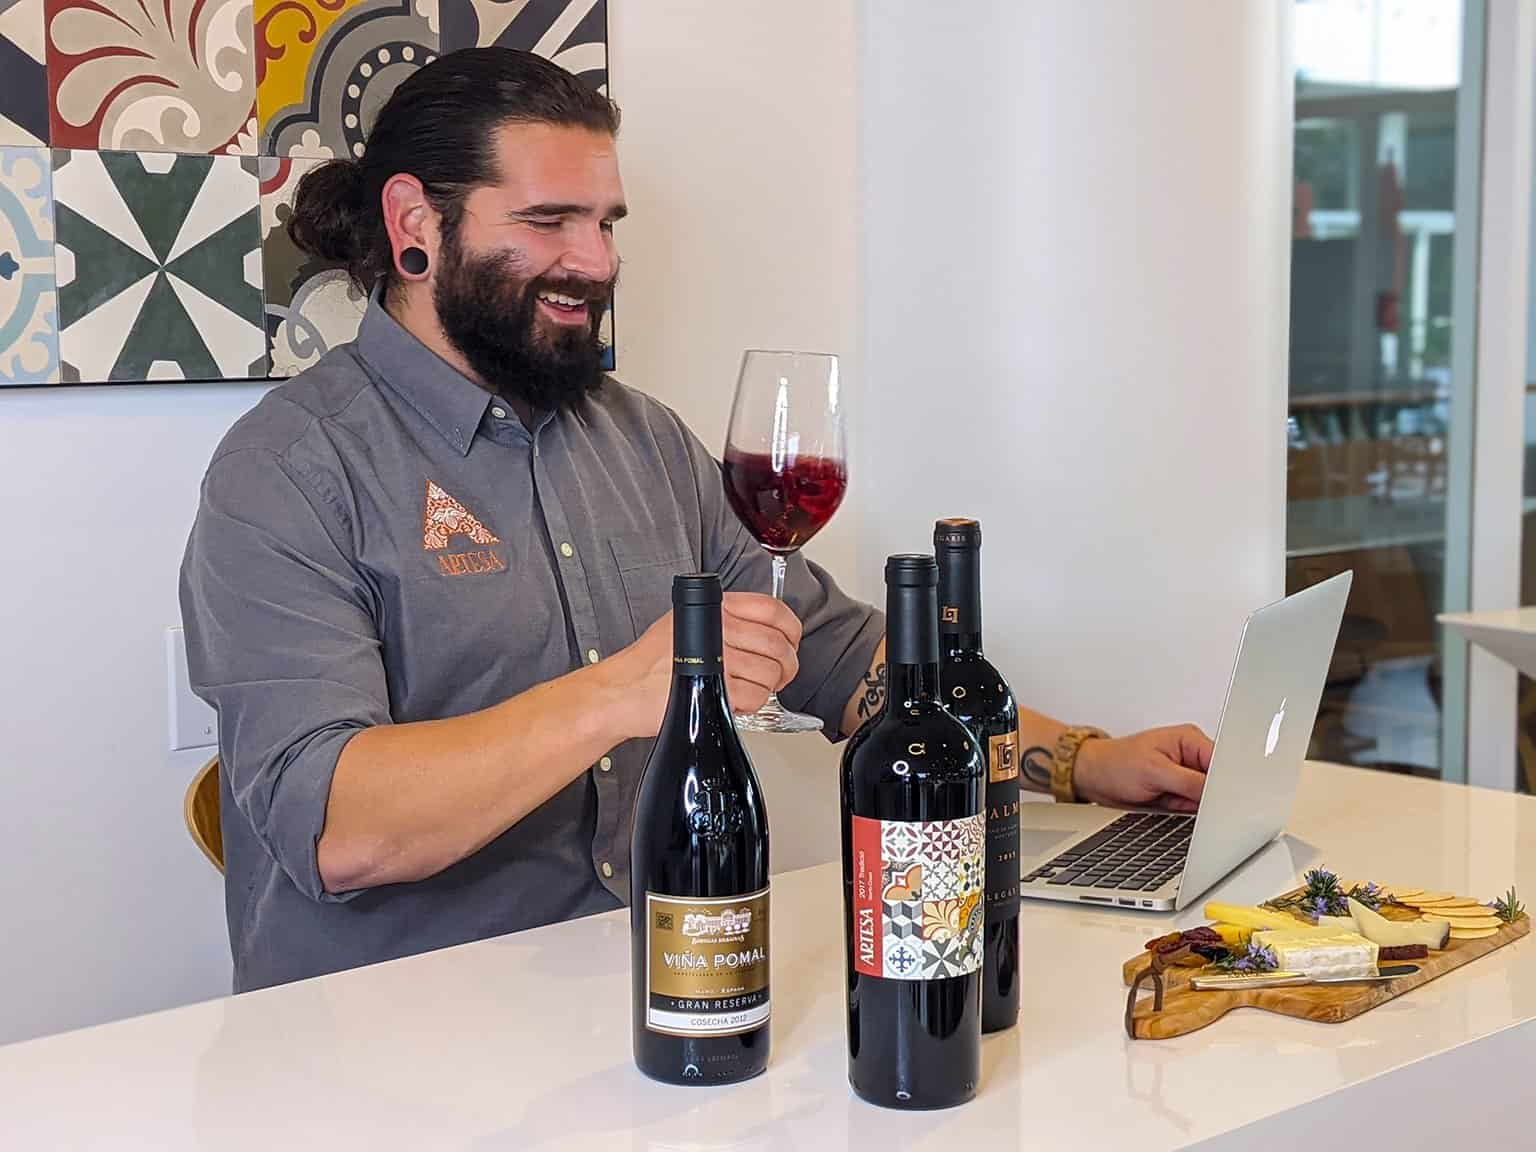 Wine Educator hosting virtual event with glass of wine in hands